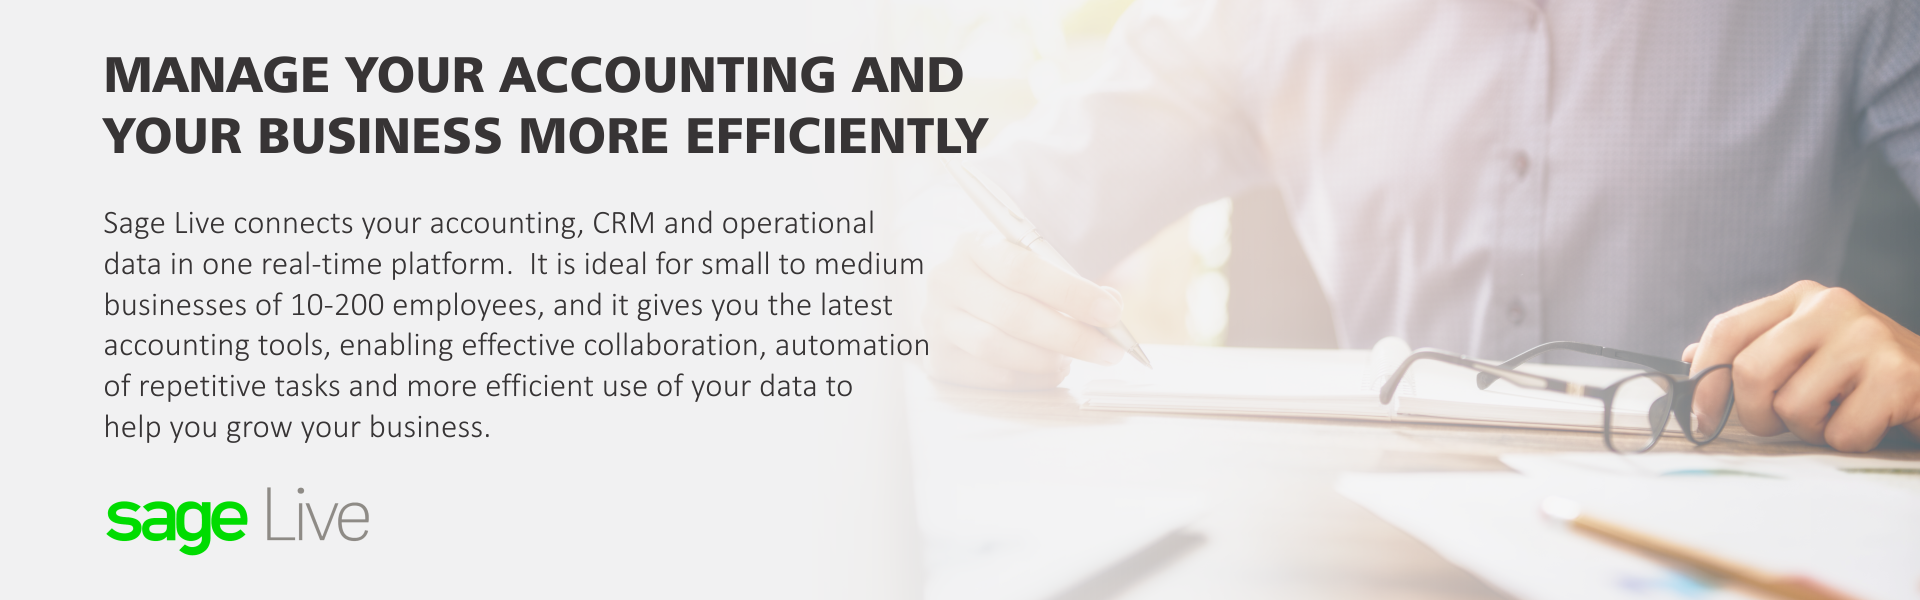 Manage your accounting and your business more efficiently